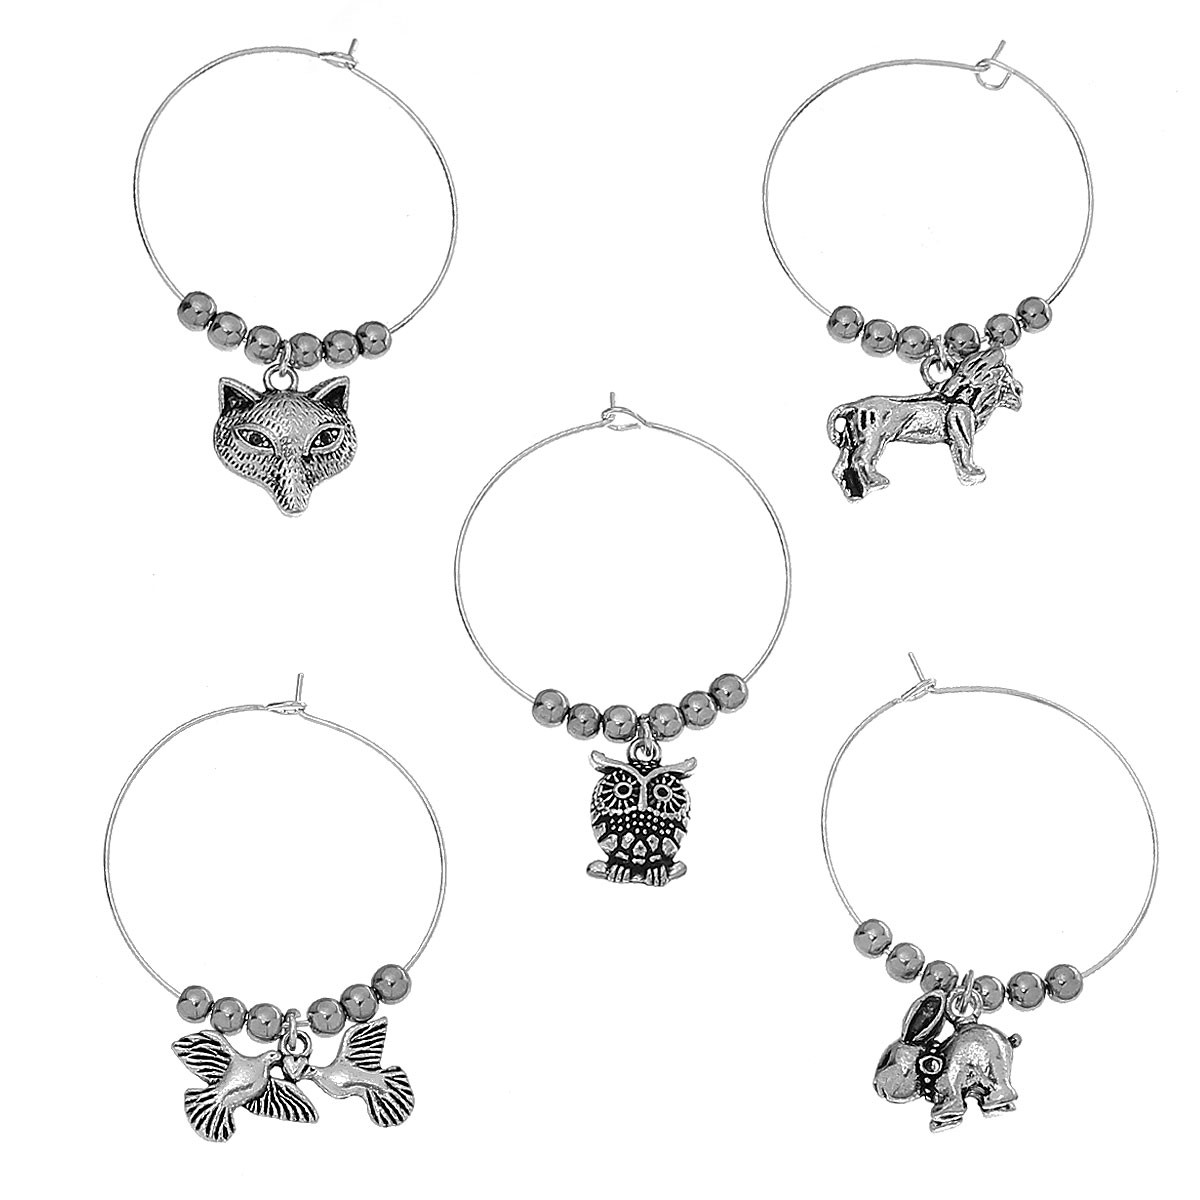 4 sets to choose from Wedding themed charms set of 20....